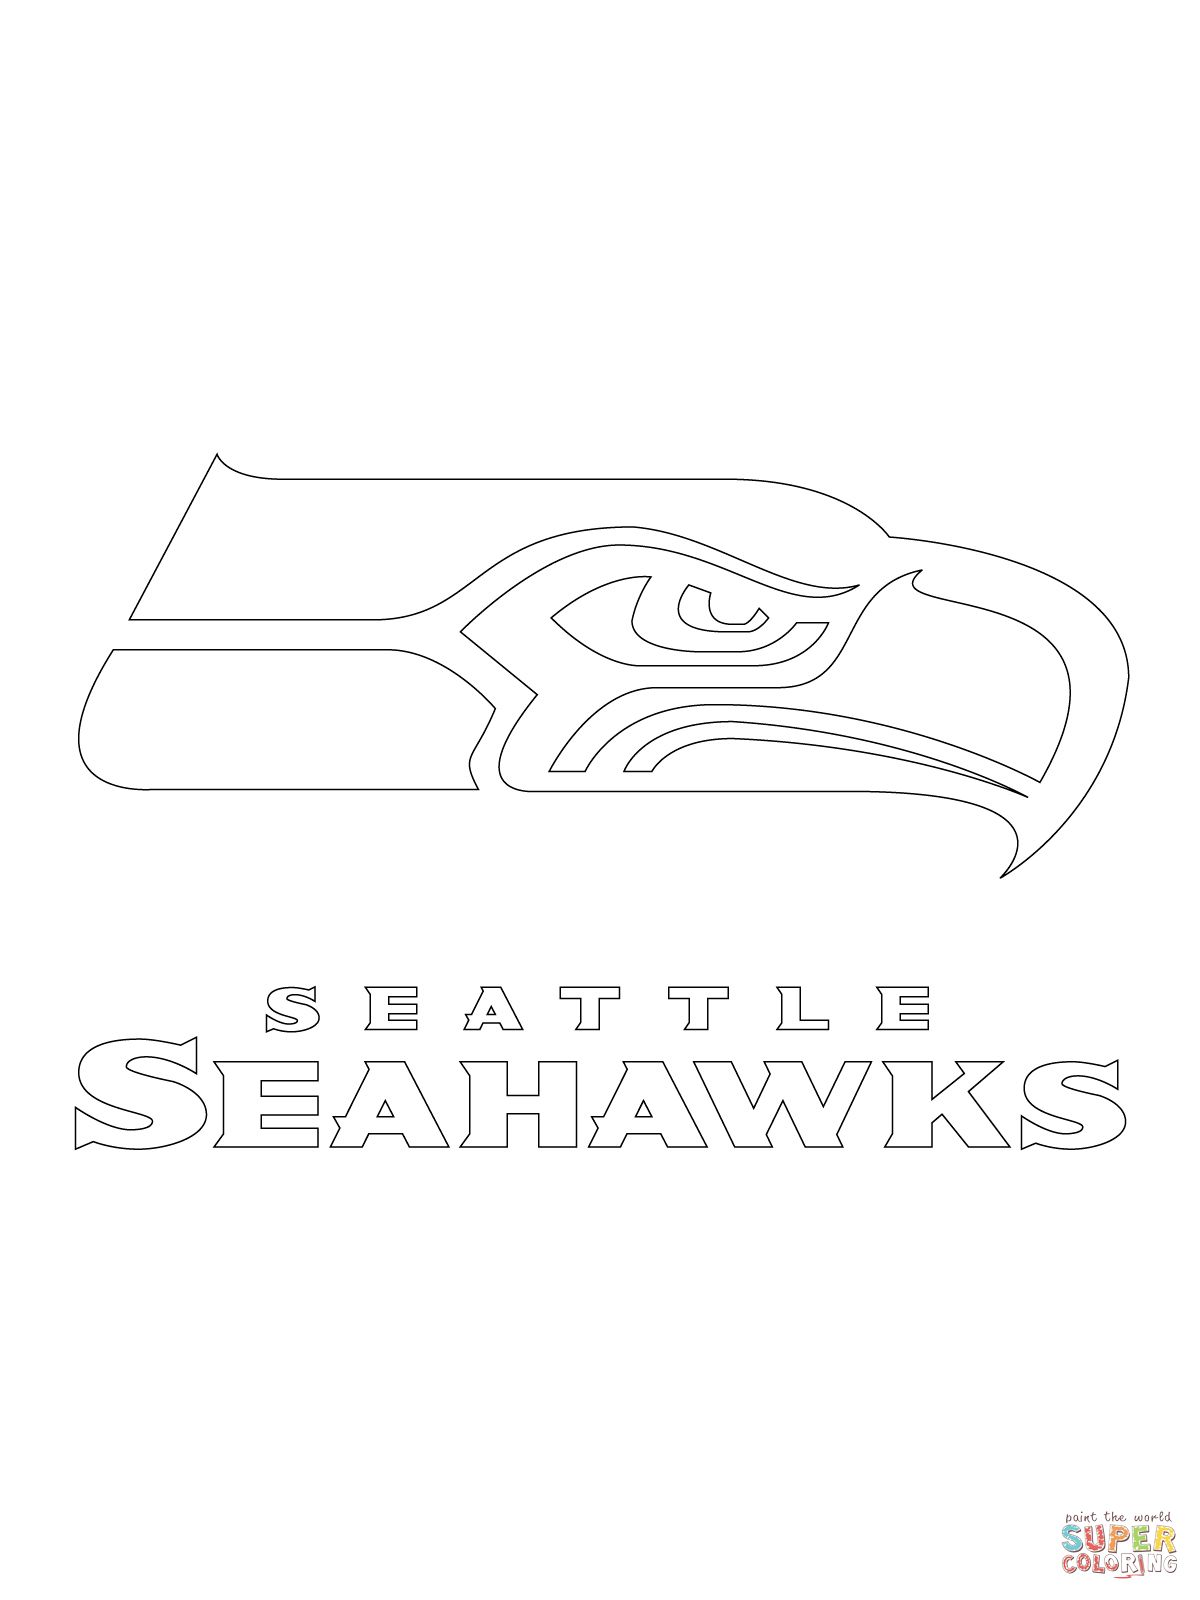 seattle seahawks logo coloring page supercoloring com seahawks